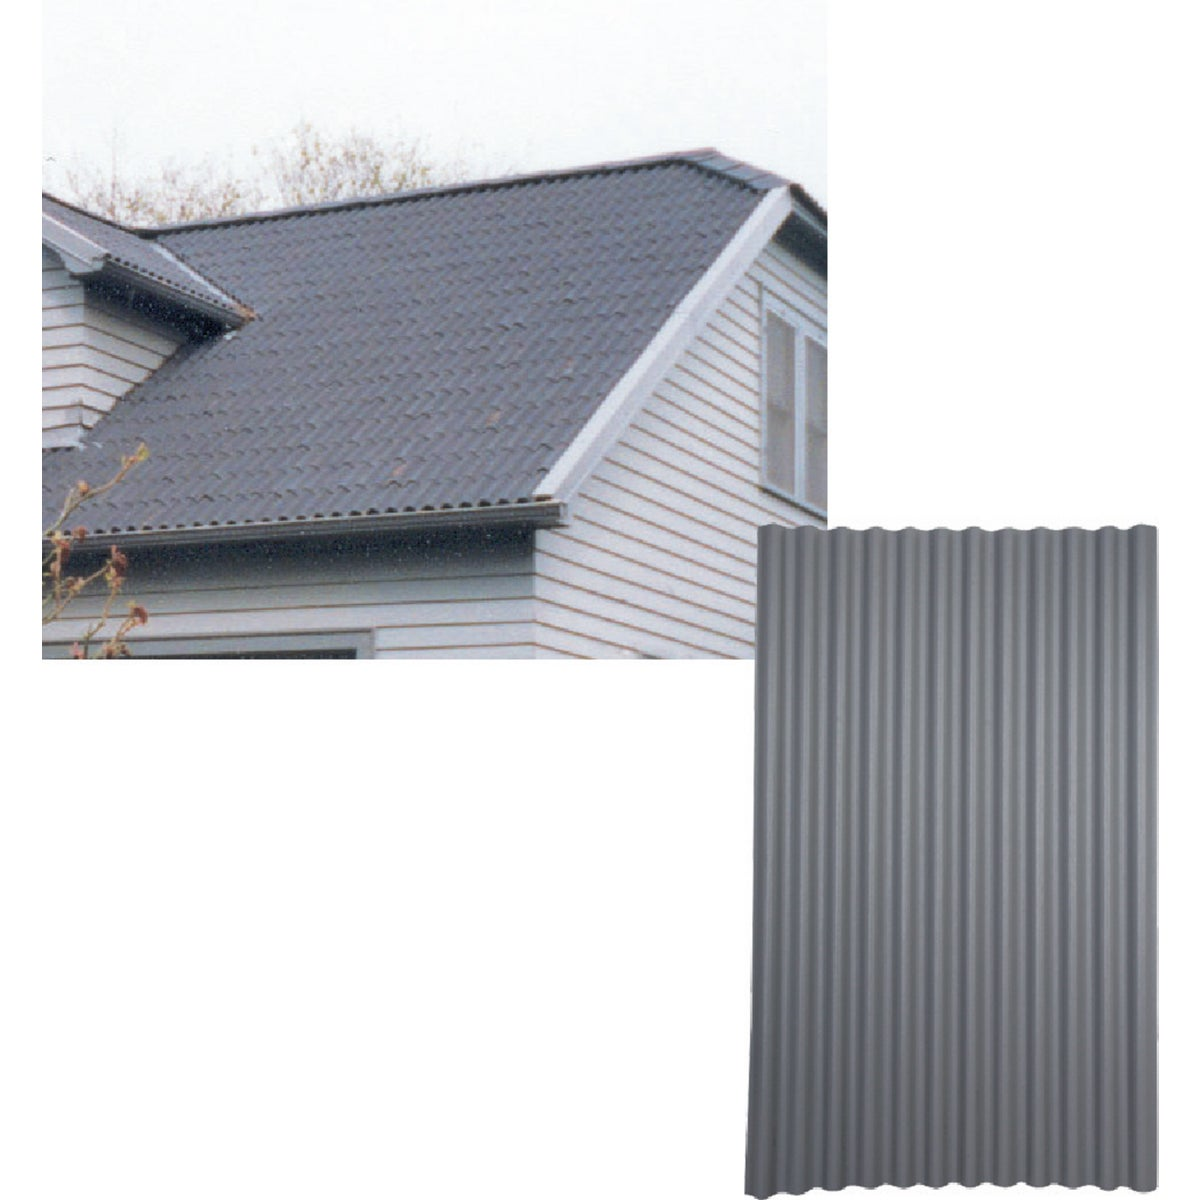 48X79GRAY ONDURA ROOFING - 150 by Ofic North America